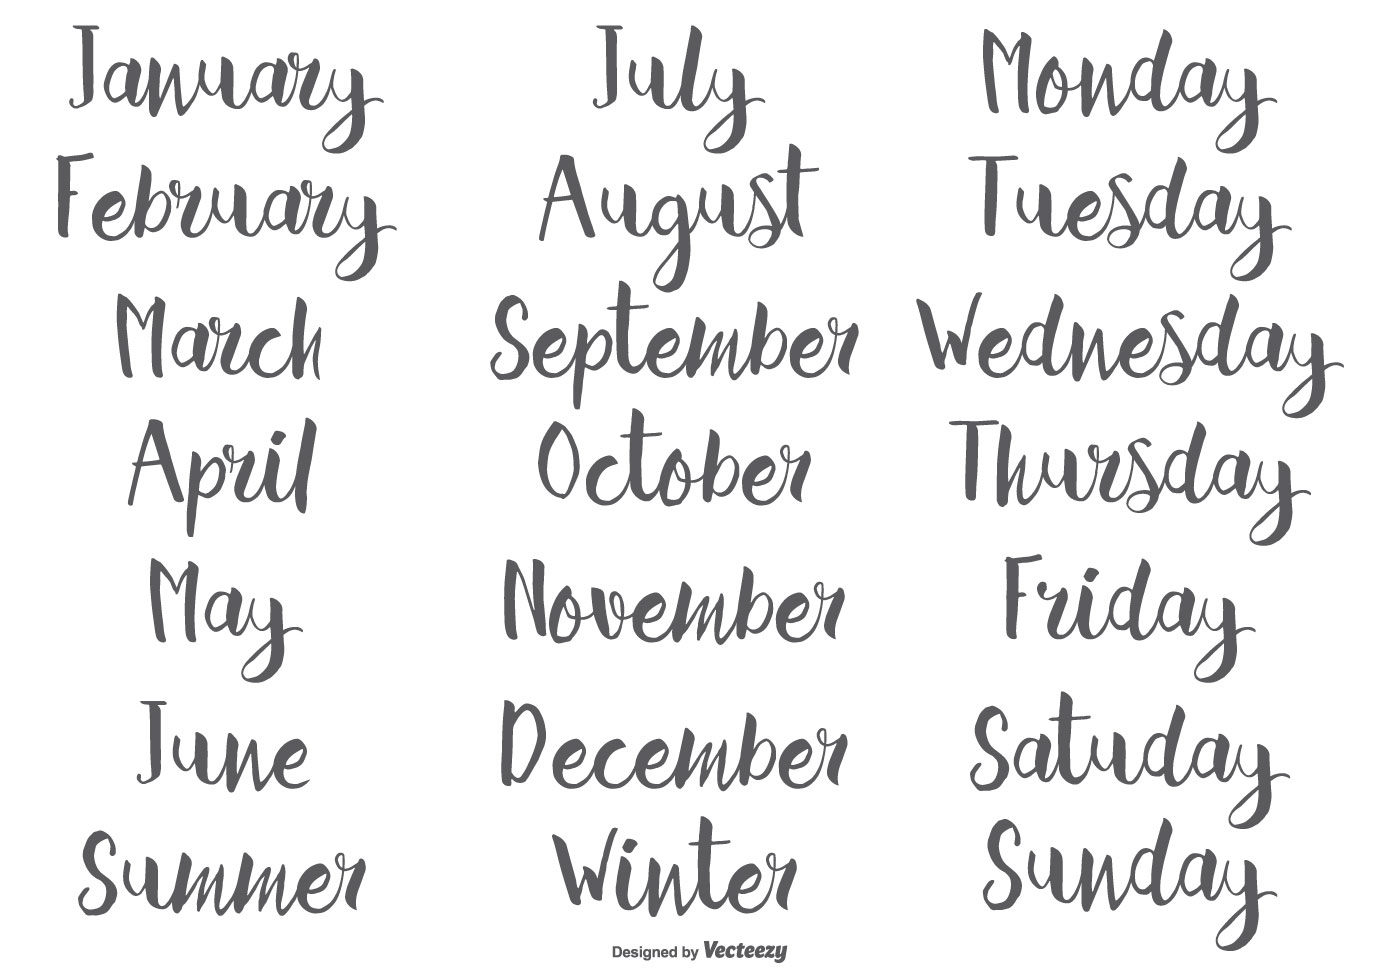 Hand Drawn Calligraphic Months And Days Of The Week